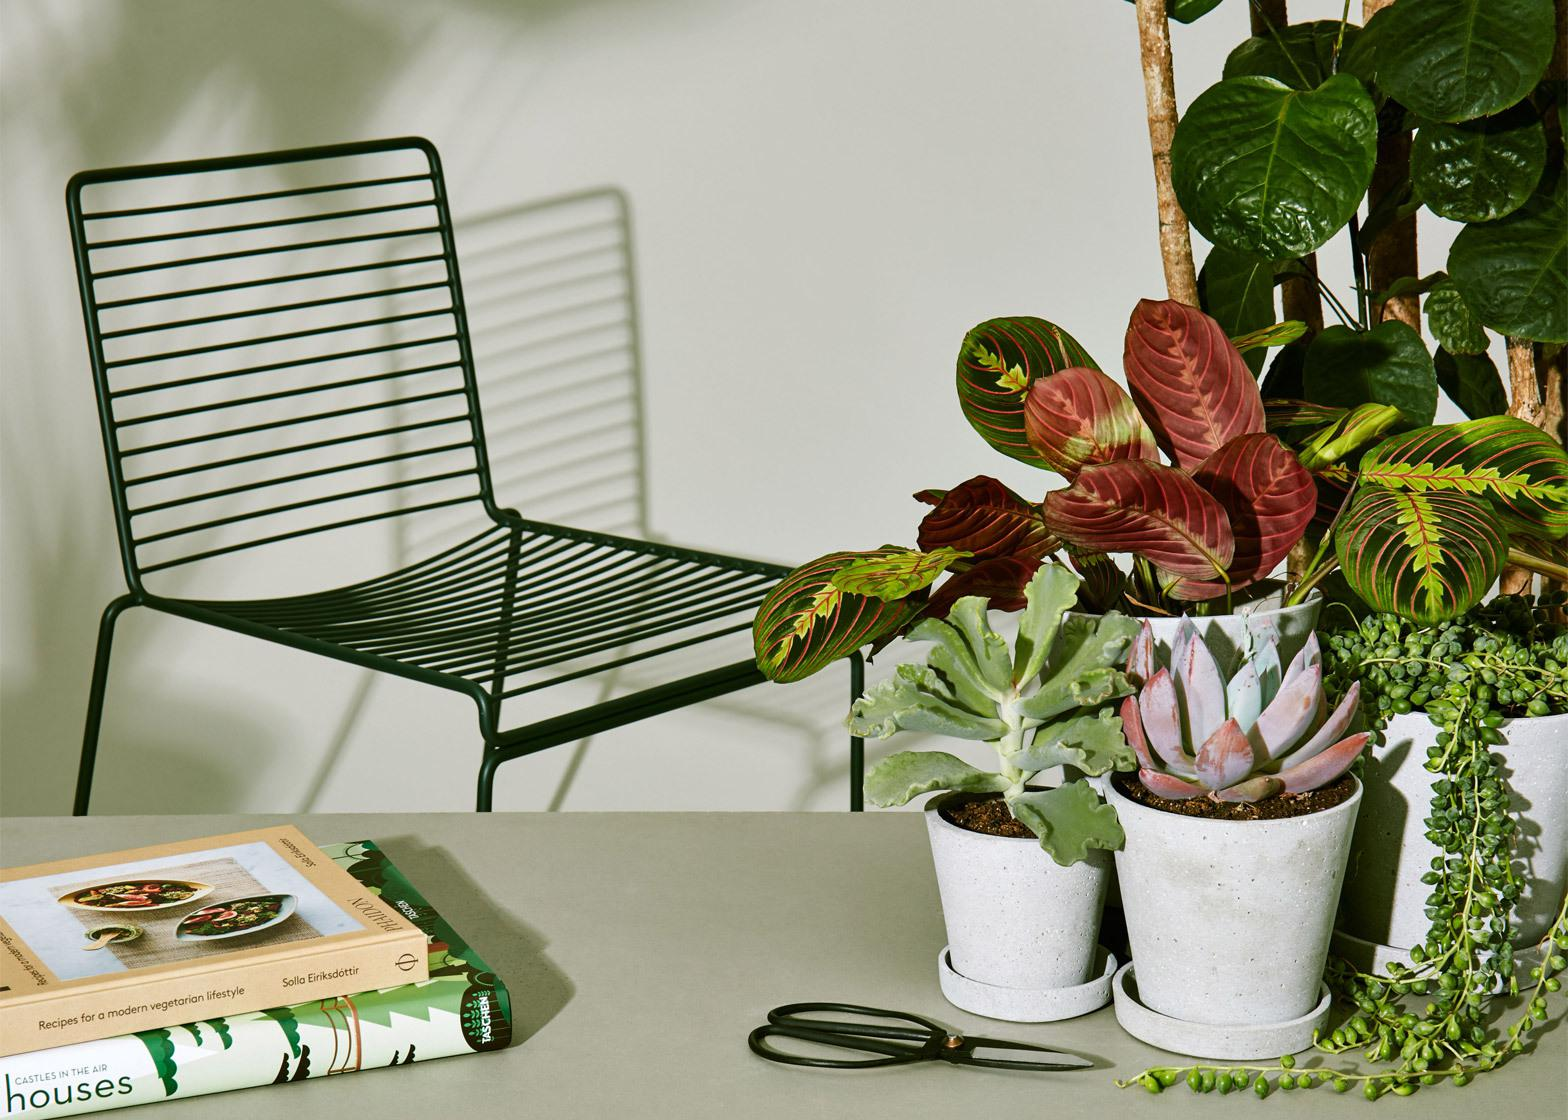 COS and Hay update collection for spring with garden furniture